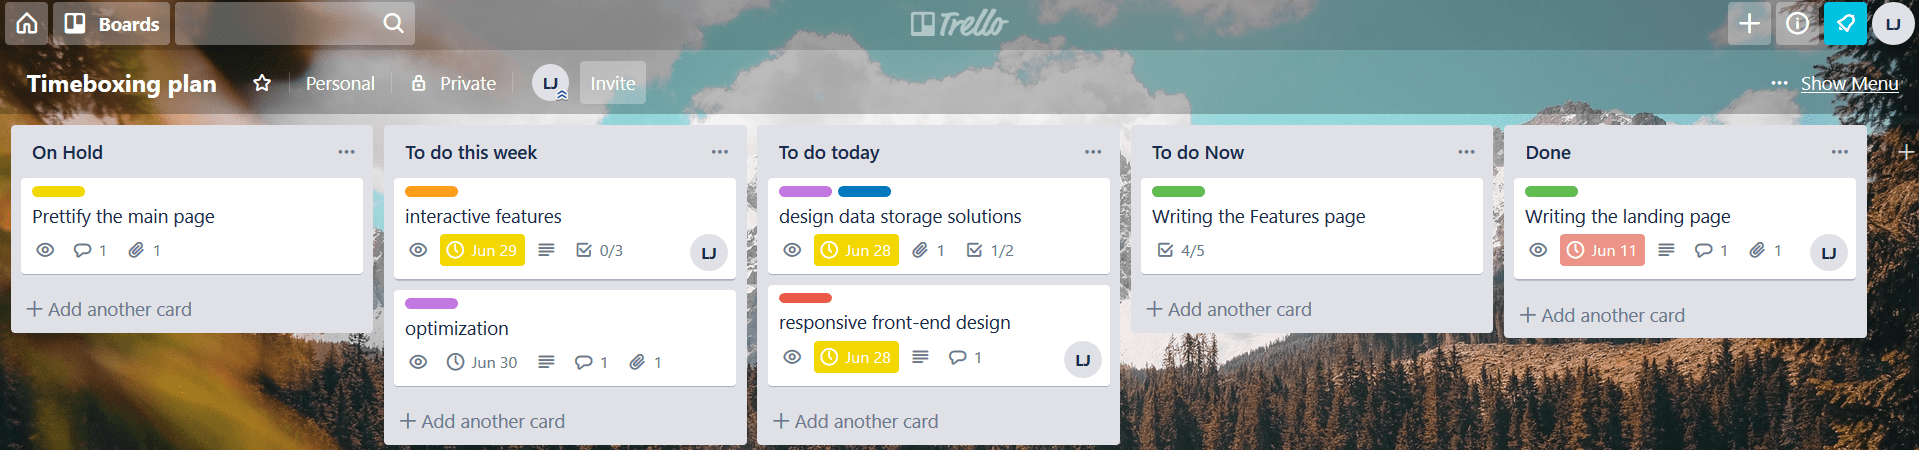 timeboxing in Trello